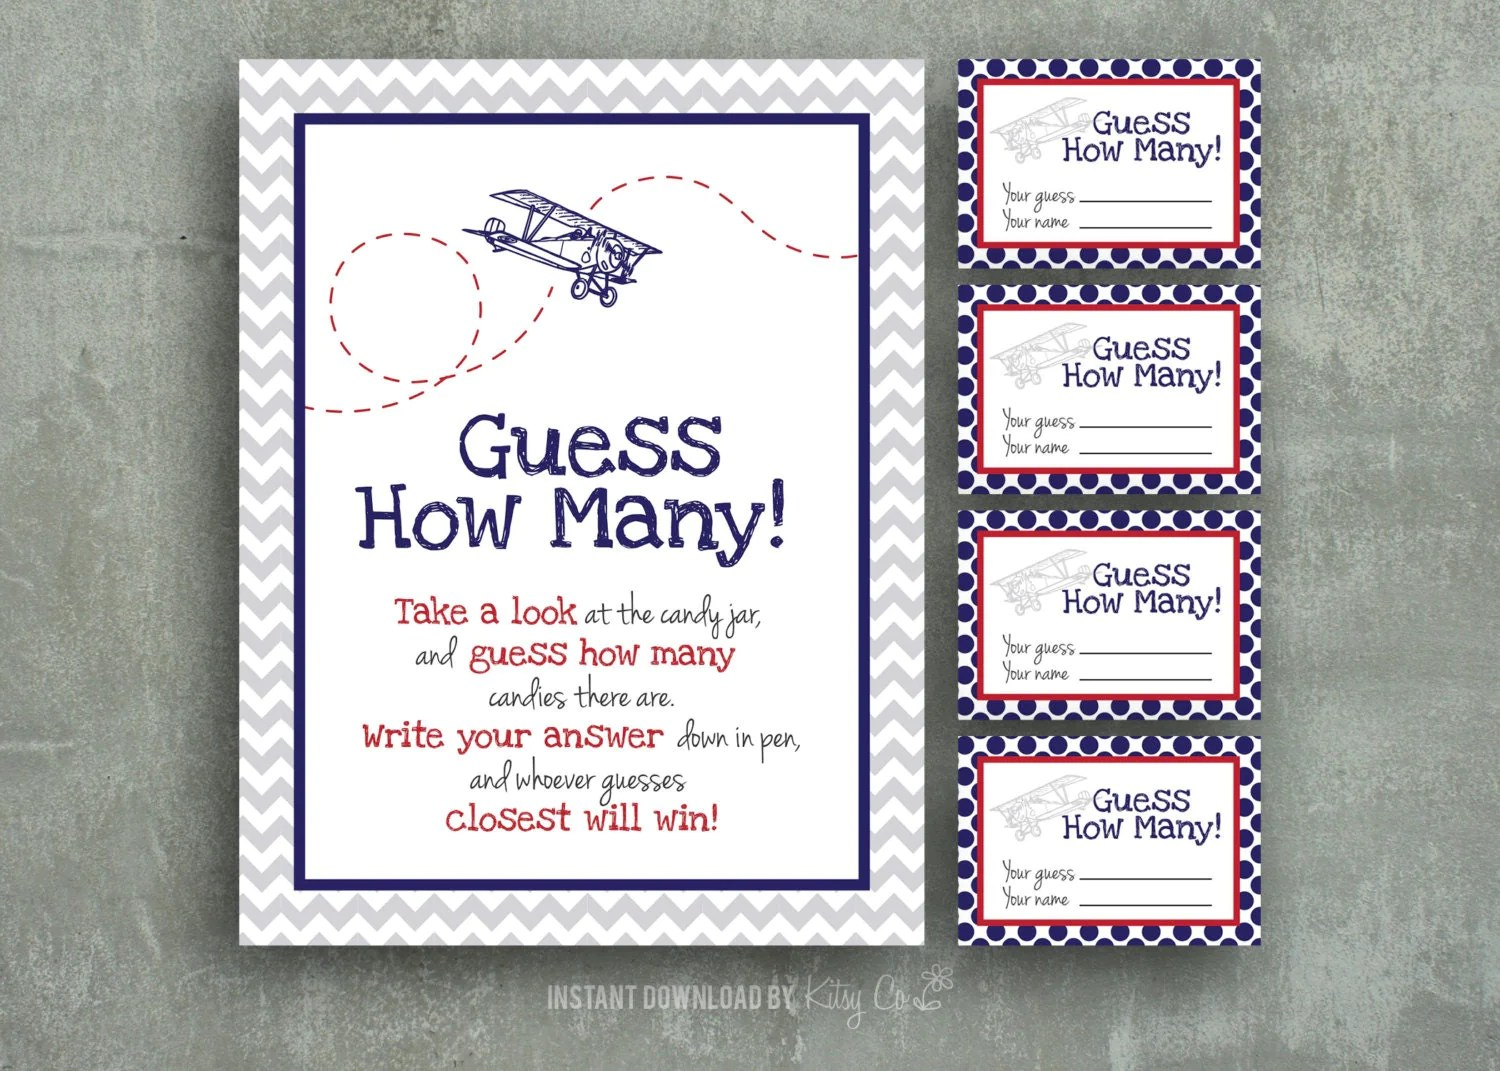 Candy Guess Game Baby Shower Printable Airplane Instant